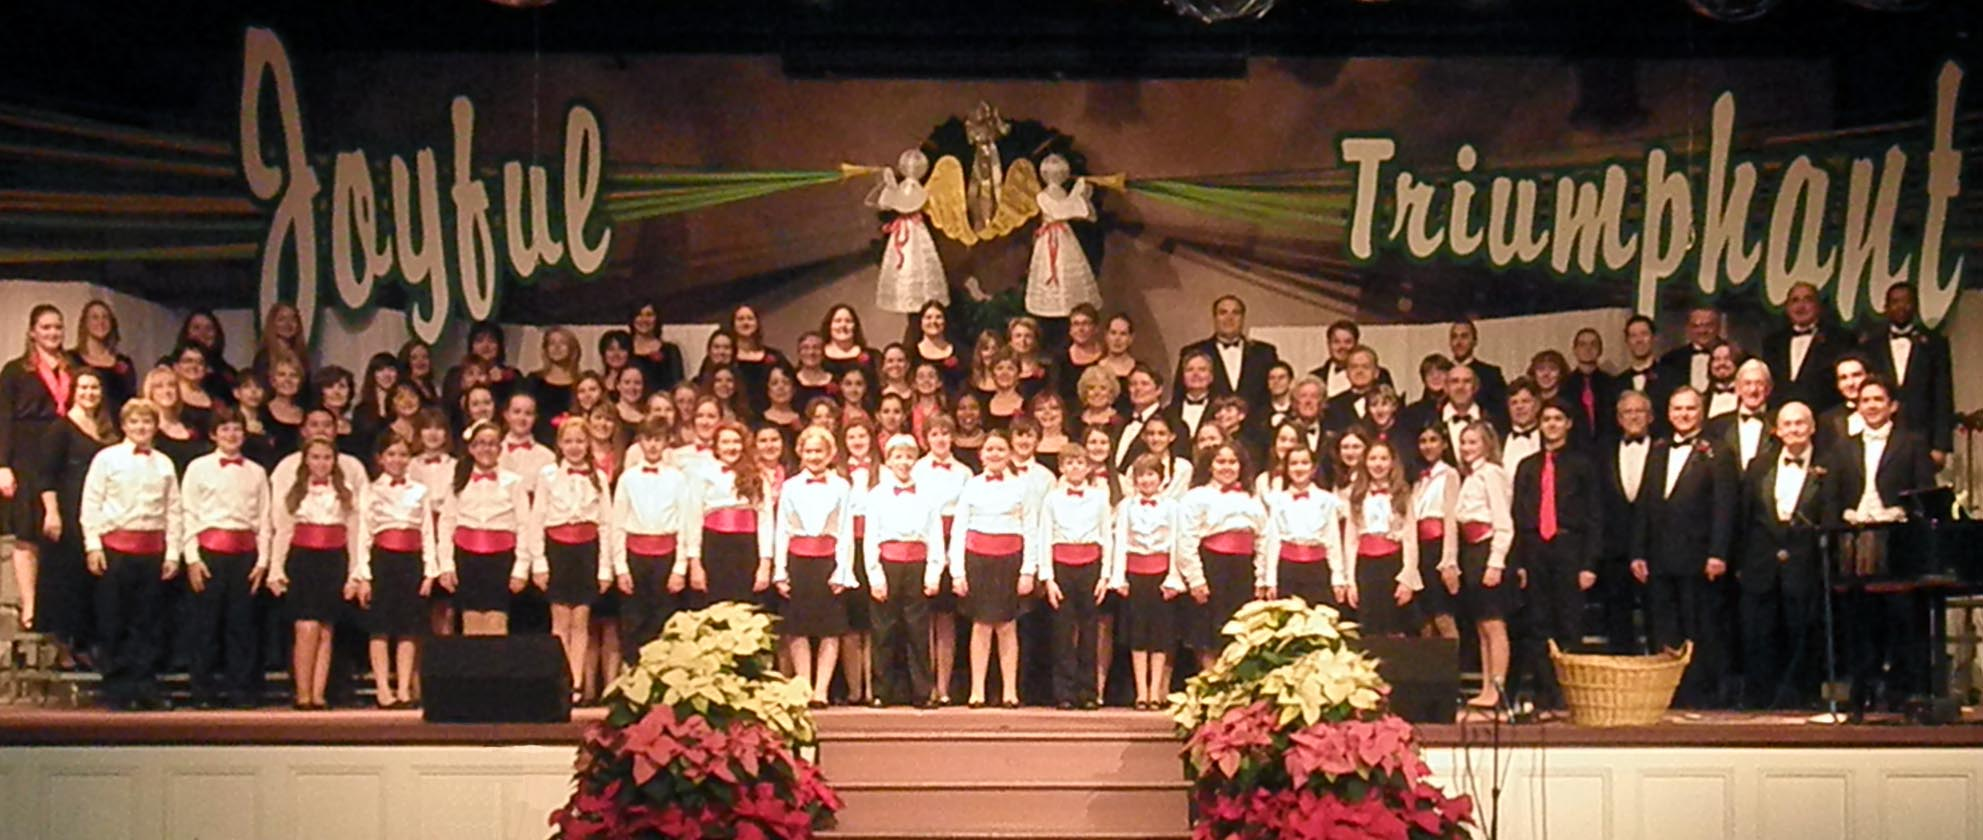 Celebration Singers Combined Choirs